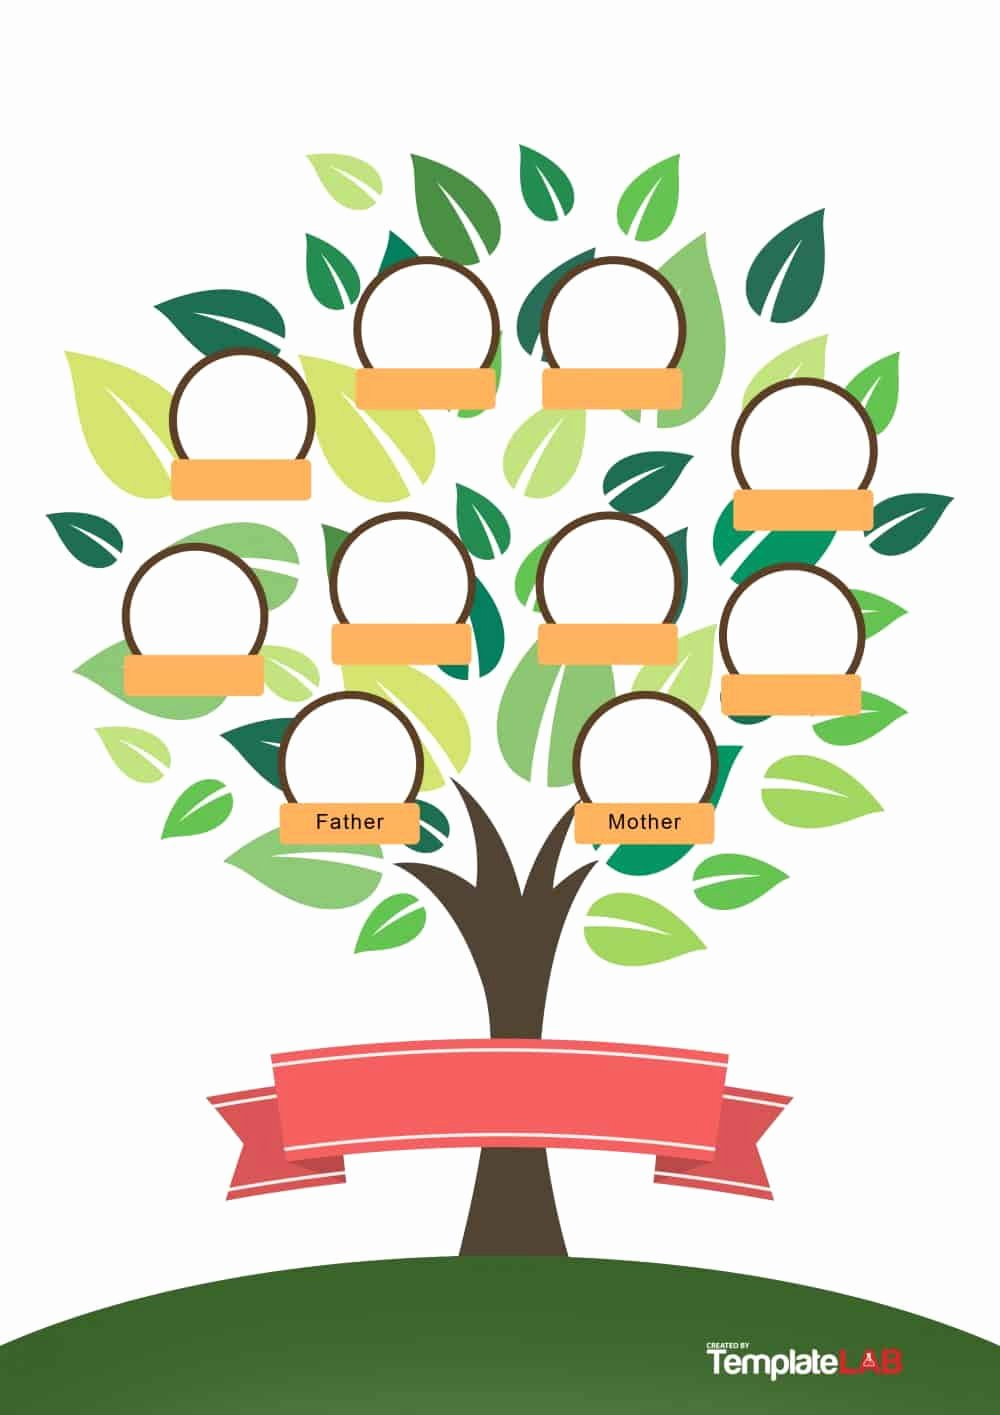 Family Tree Template Free New 50 Free Family Tree Templates Word Excel Pdf